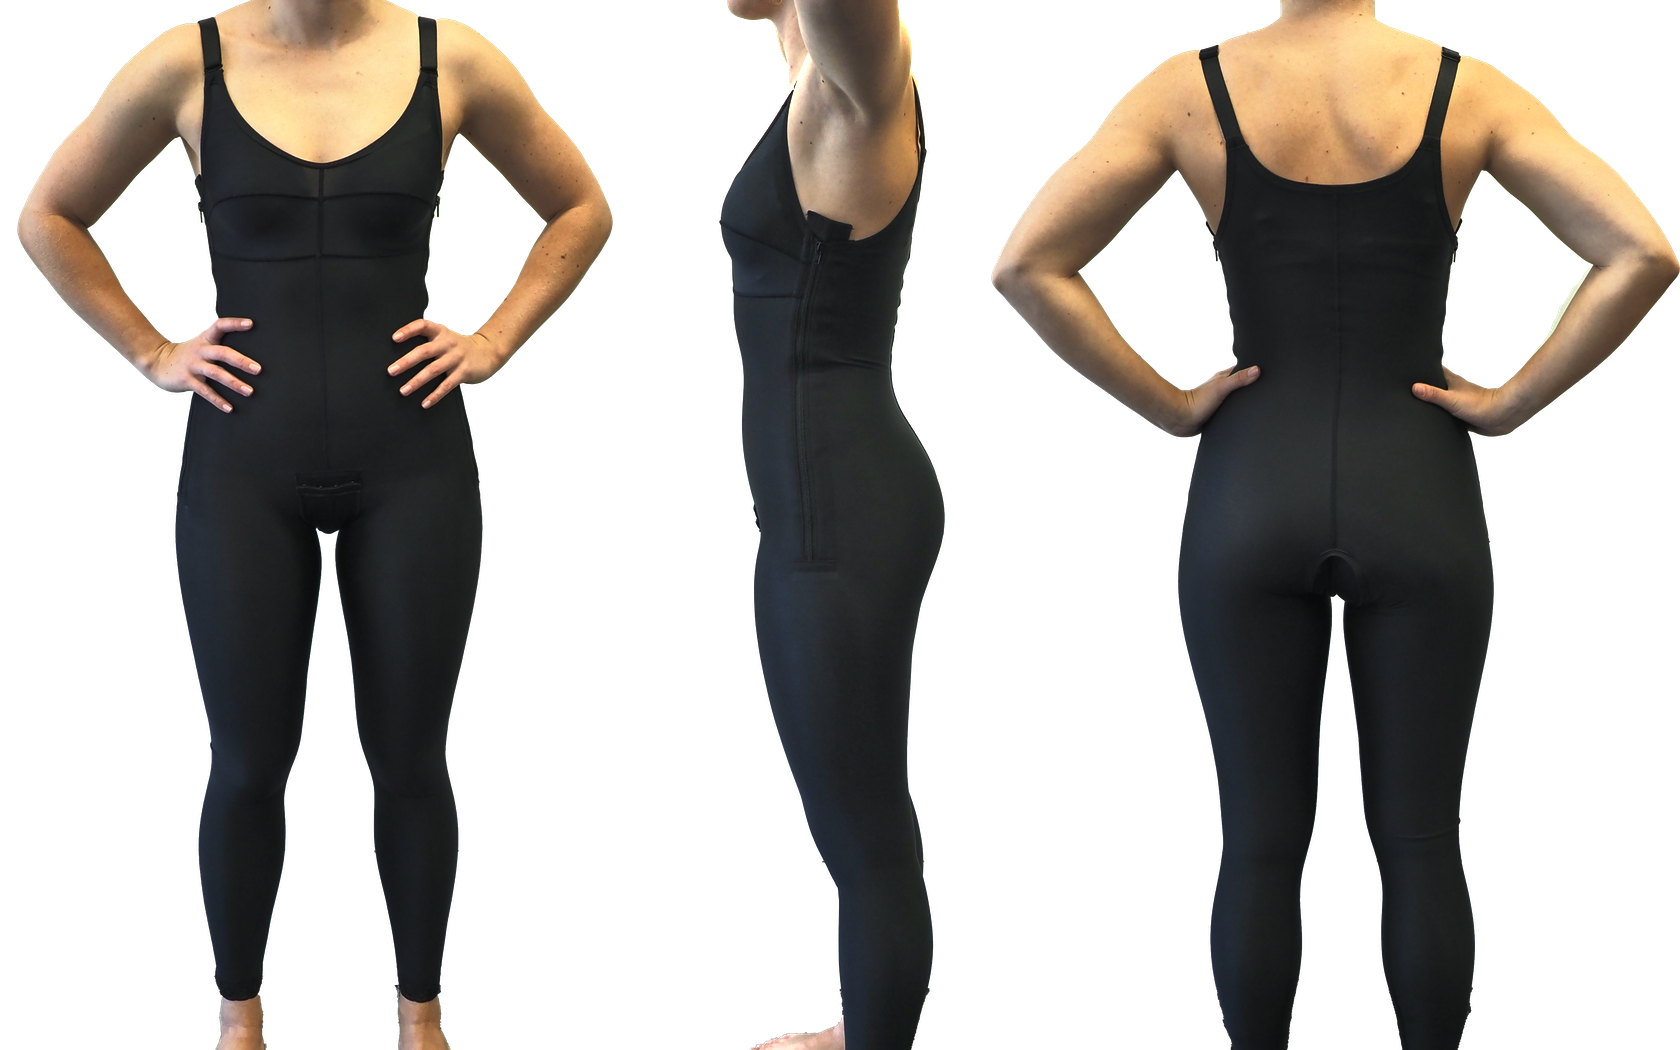 Full Body Compression Garment - To Ankle